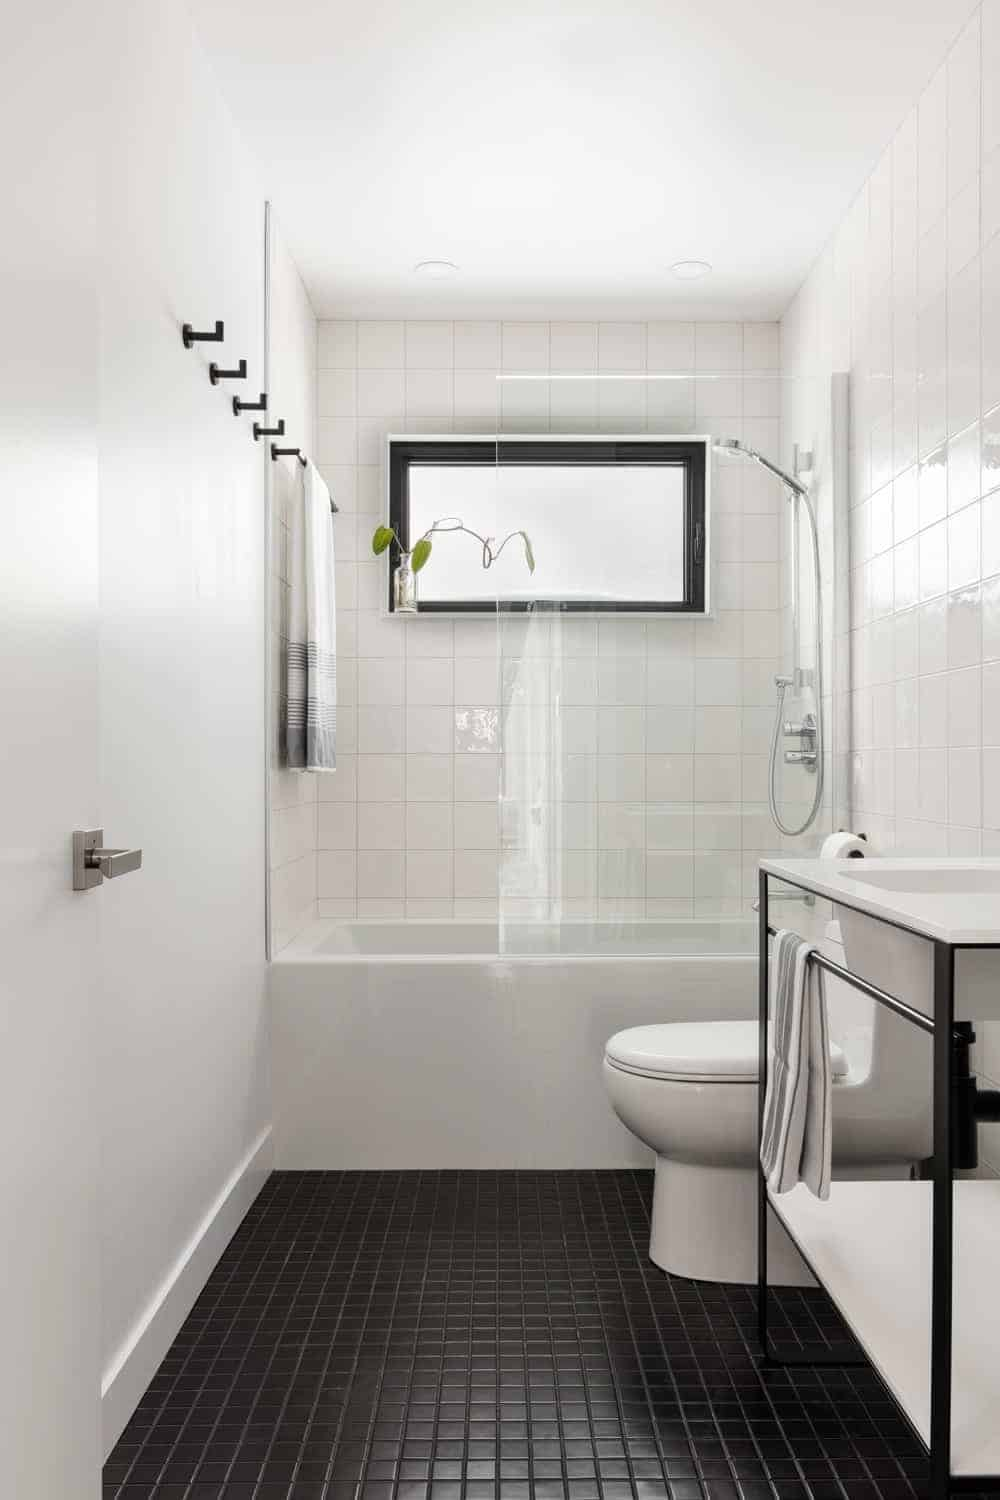 This simple Scandinavian bathroom has a white ceiling, white walls, bathtub, toilet, and sink. This white theme is counterbalanced by the black elements of the floor tiles, window frame, and the dark iron housing of the sink.